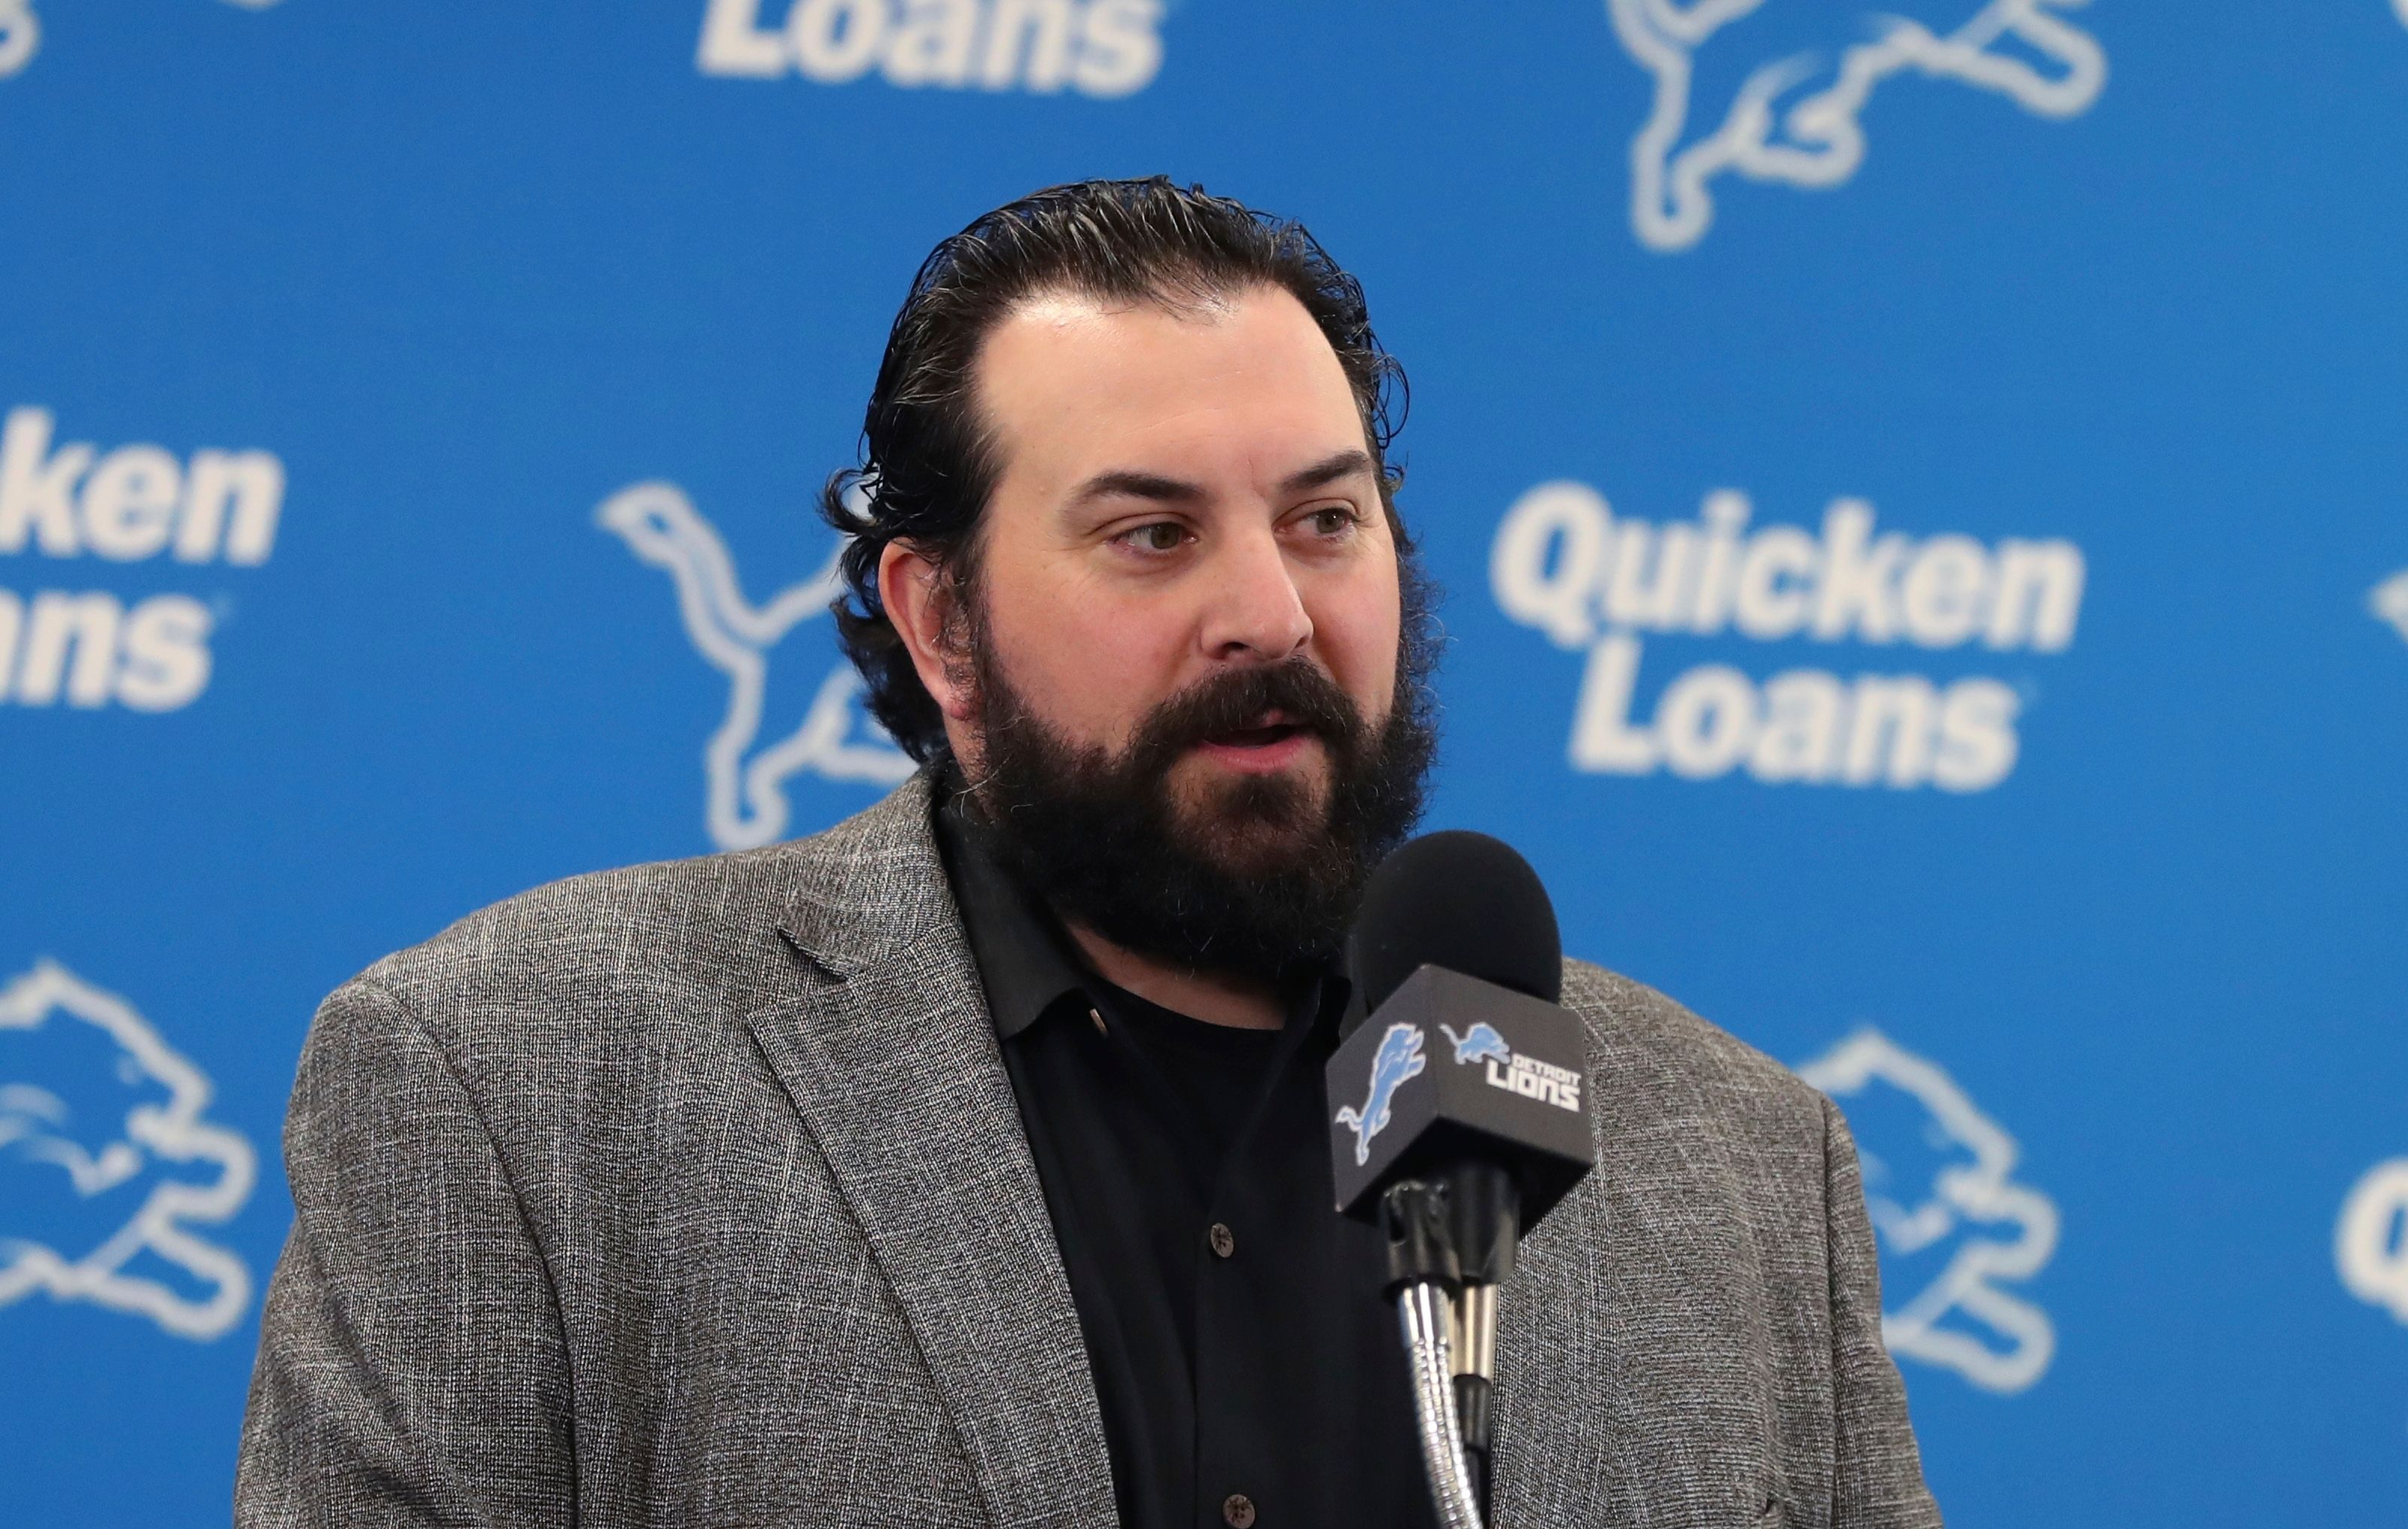 Lions coach Matt Patricia was charged with aggravated sexual assault in 1996, but case was dismissed